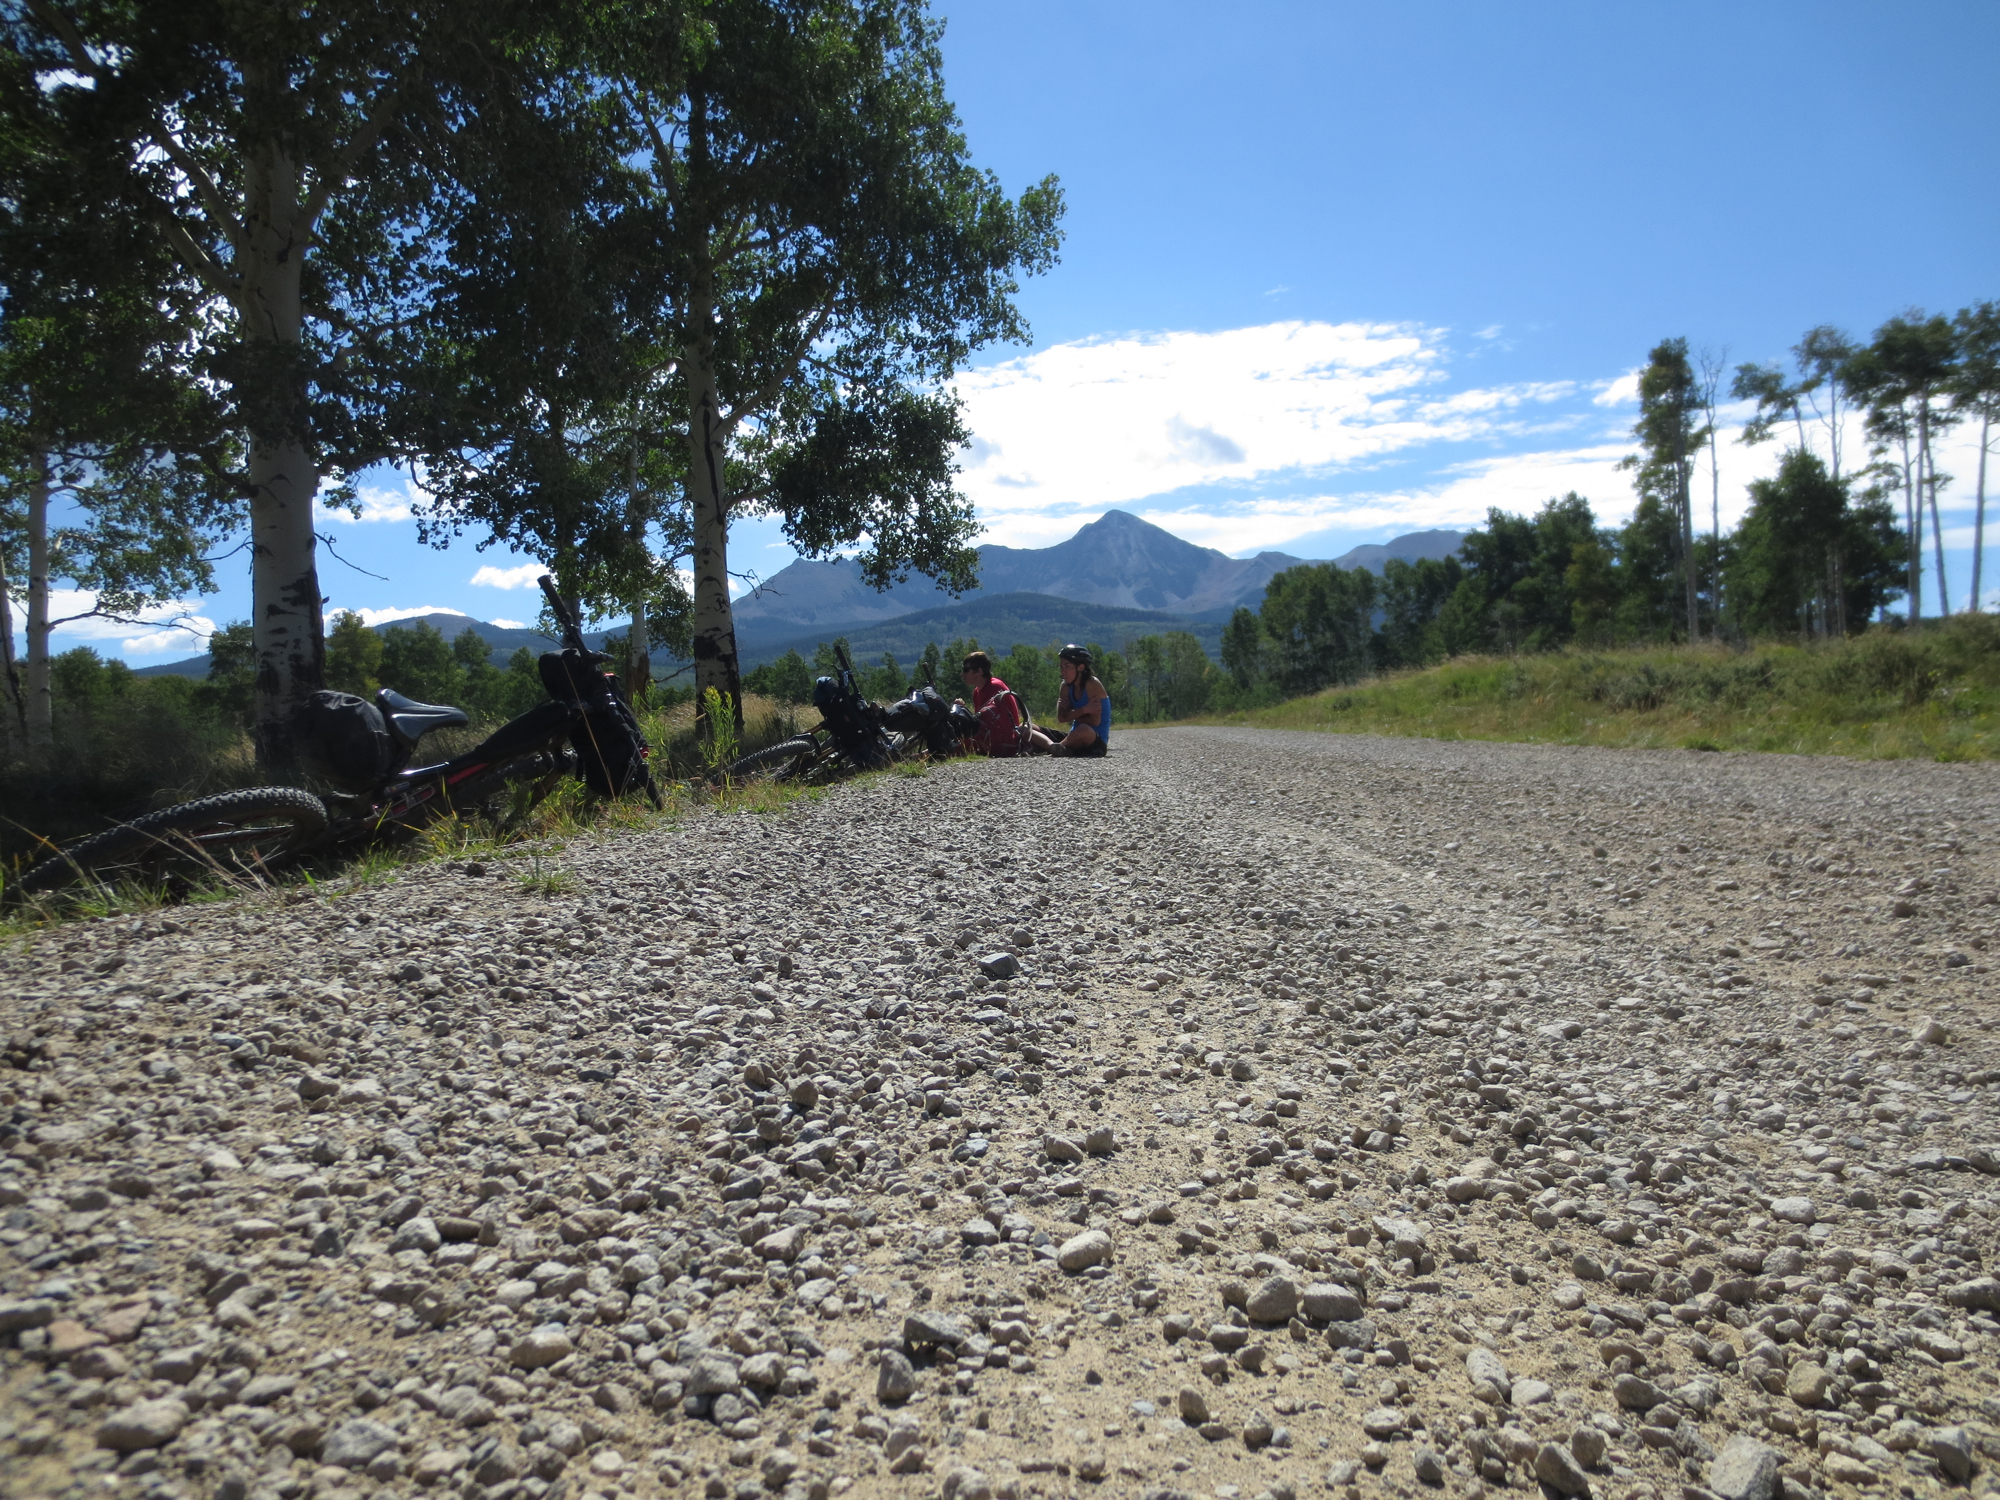 Lunch, anyone? Looking back towards the Wilson Group and sitting in the shade of aspen - life on the road is good.